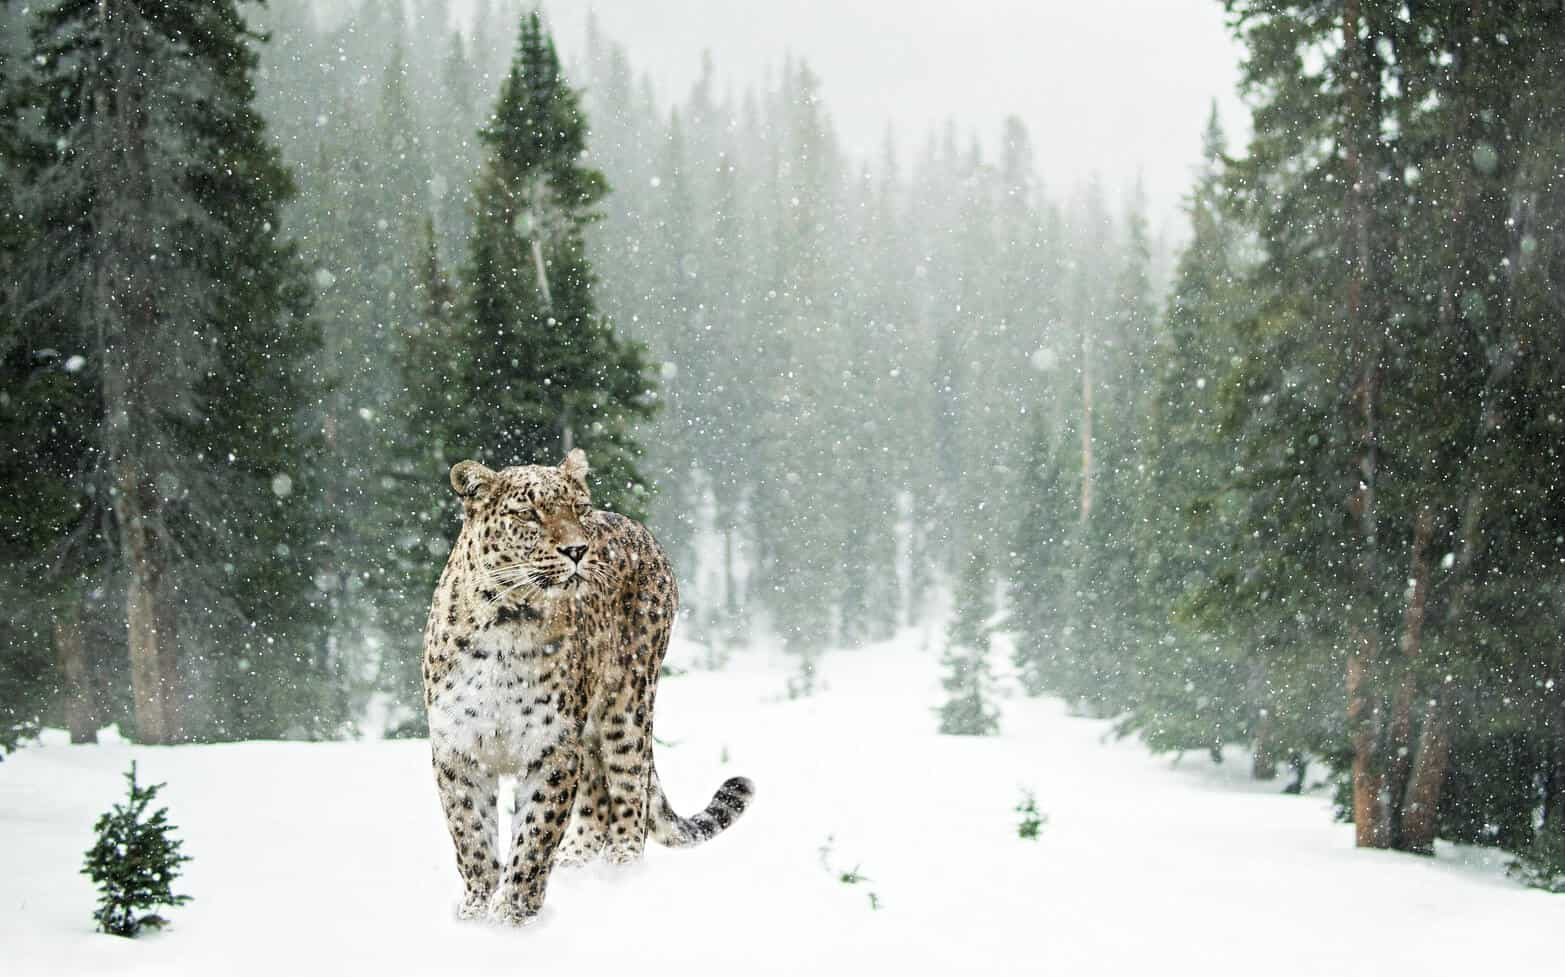 snow leopard is an endangered animal of India